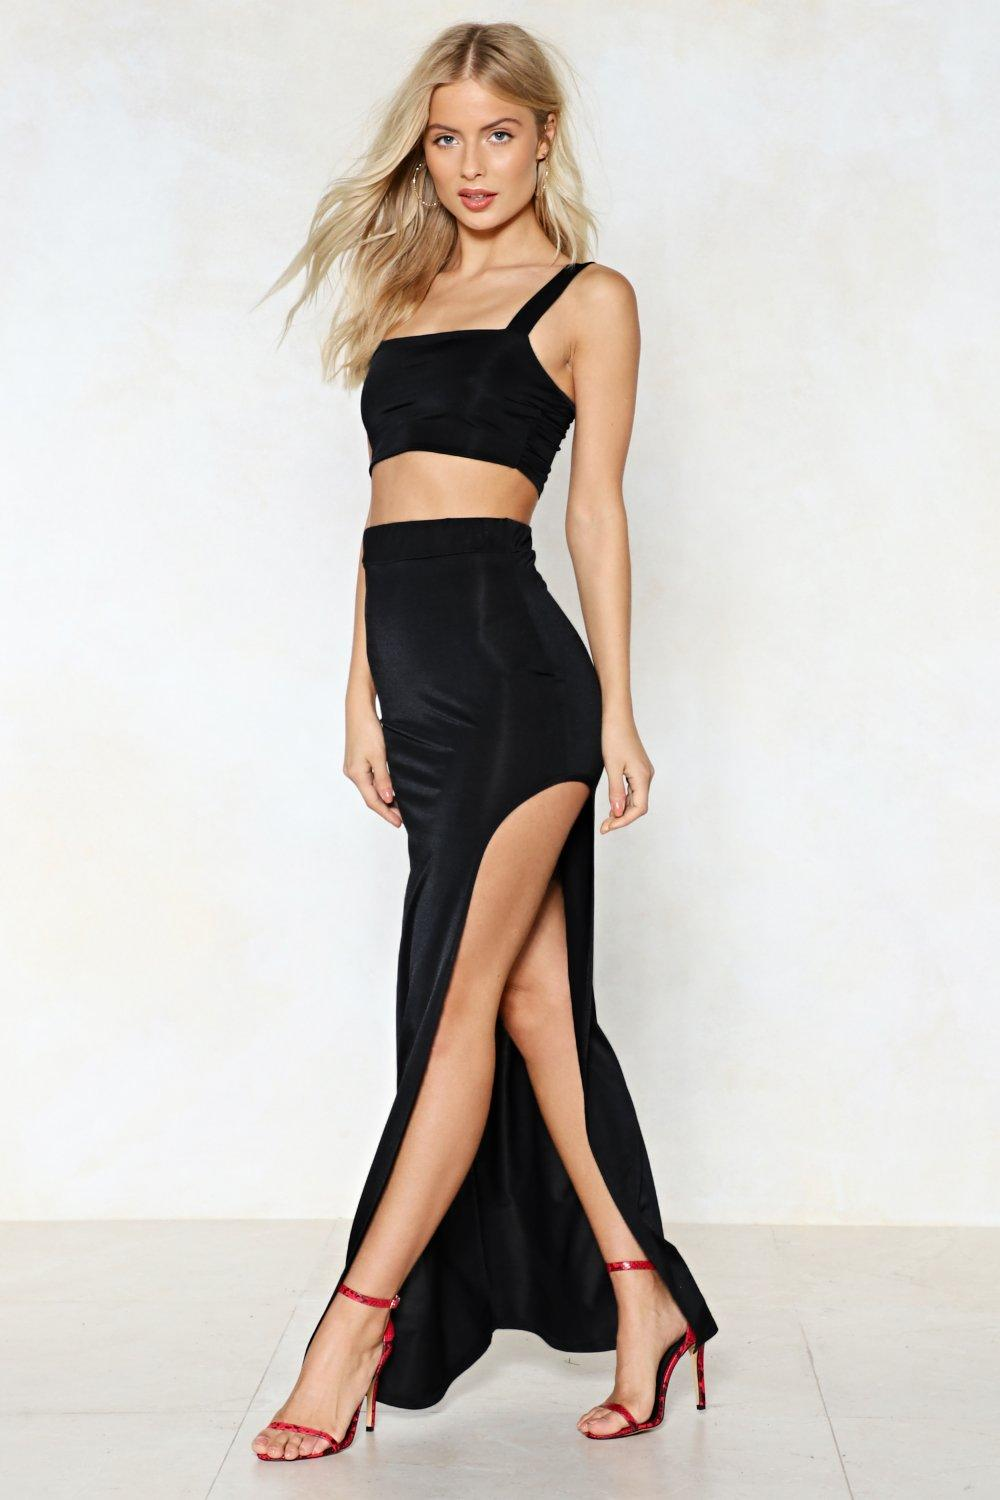 53288e2cf42d Slit Tight Crop Top and Skirt Set | Shop Clothes at Nasty Gal!